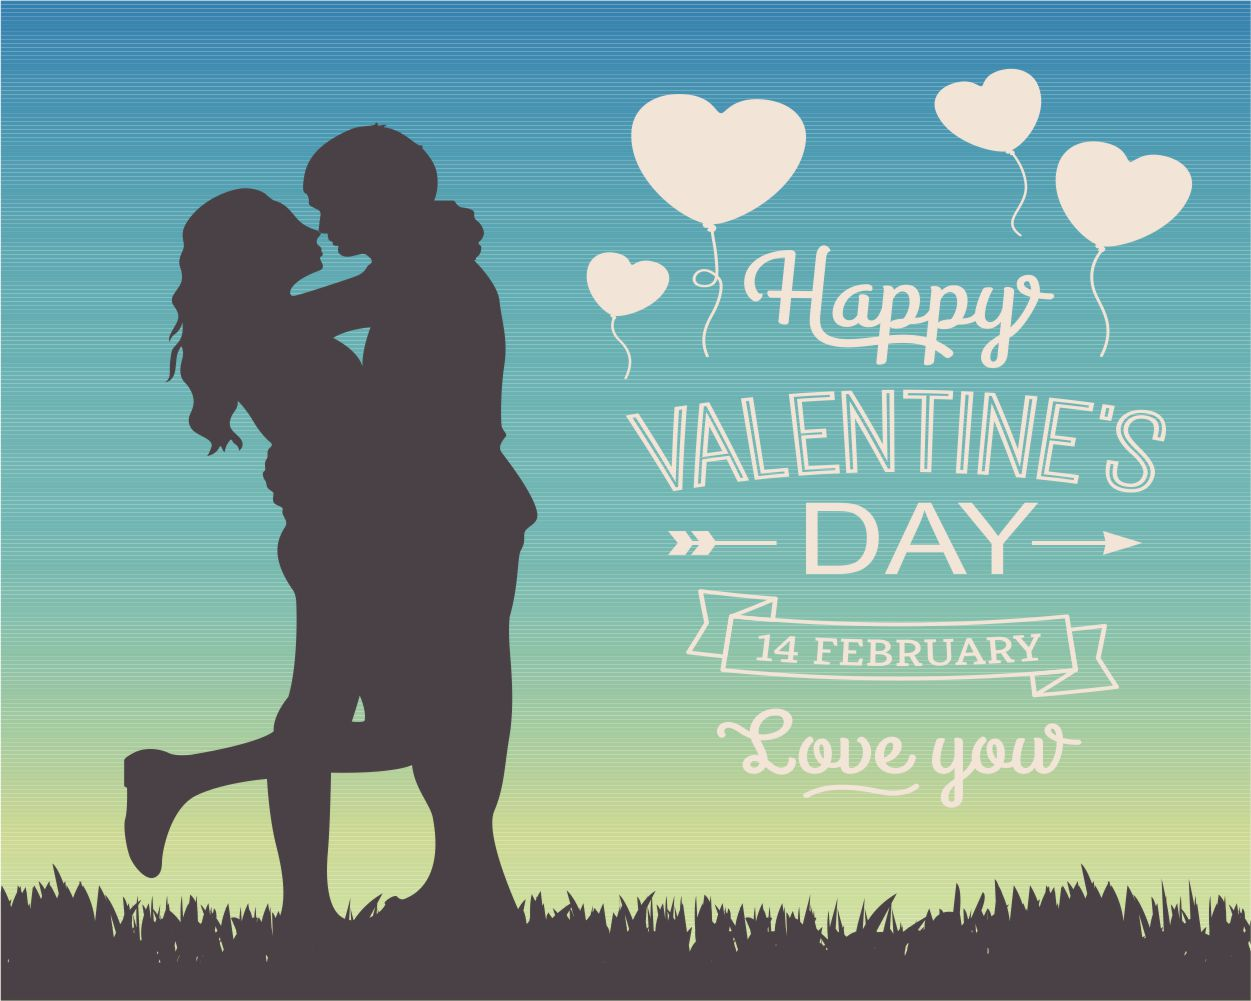 Valentines Quotes For Her Valentines Day Quotes For Her Images  Valentines Day Quotes For